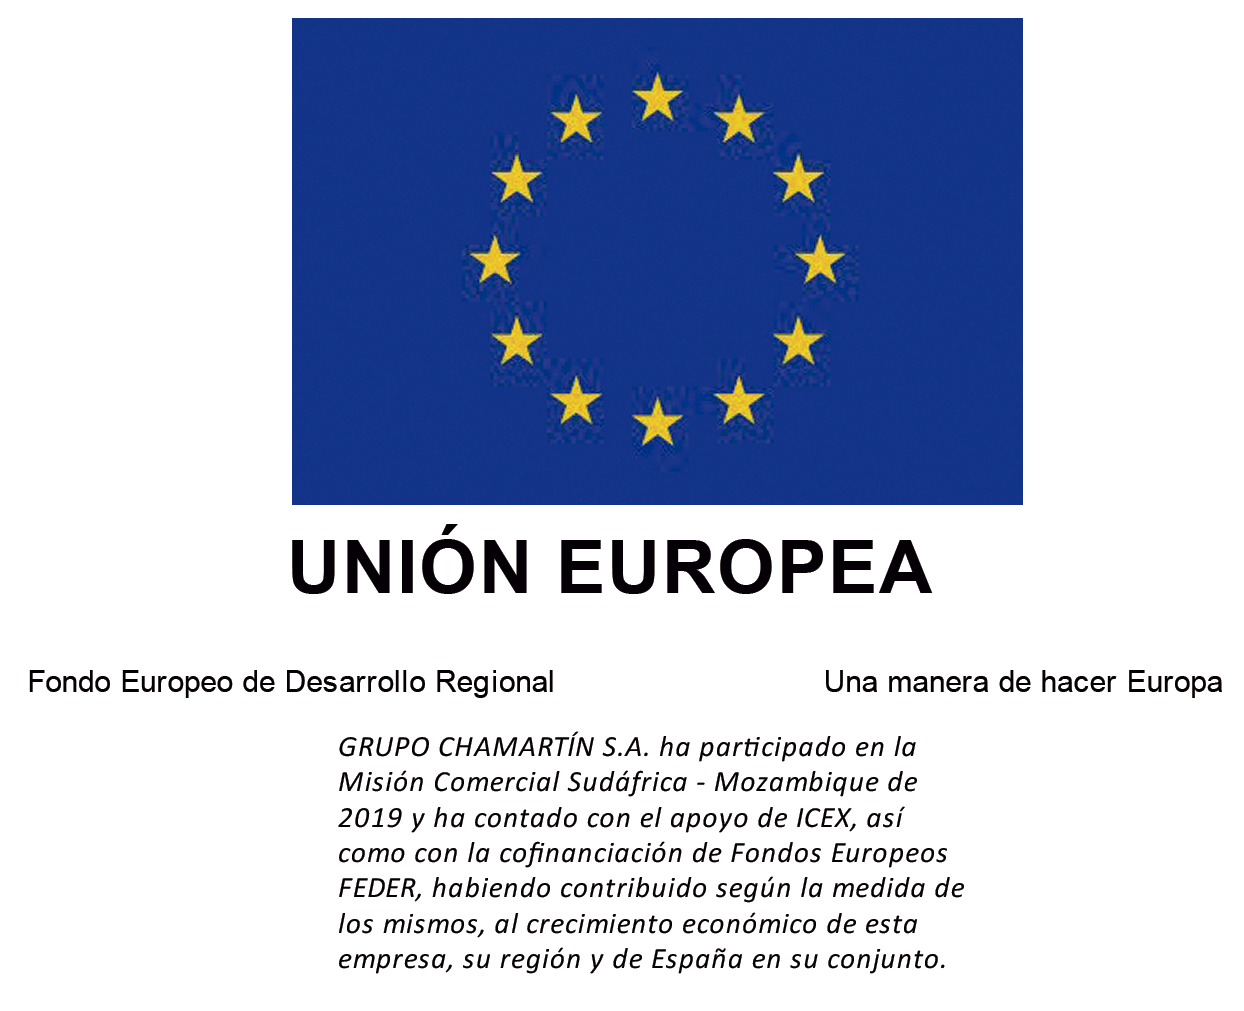 union-europea-agragex-mision-comercial